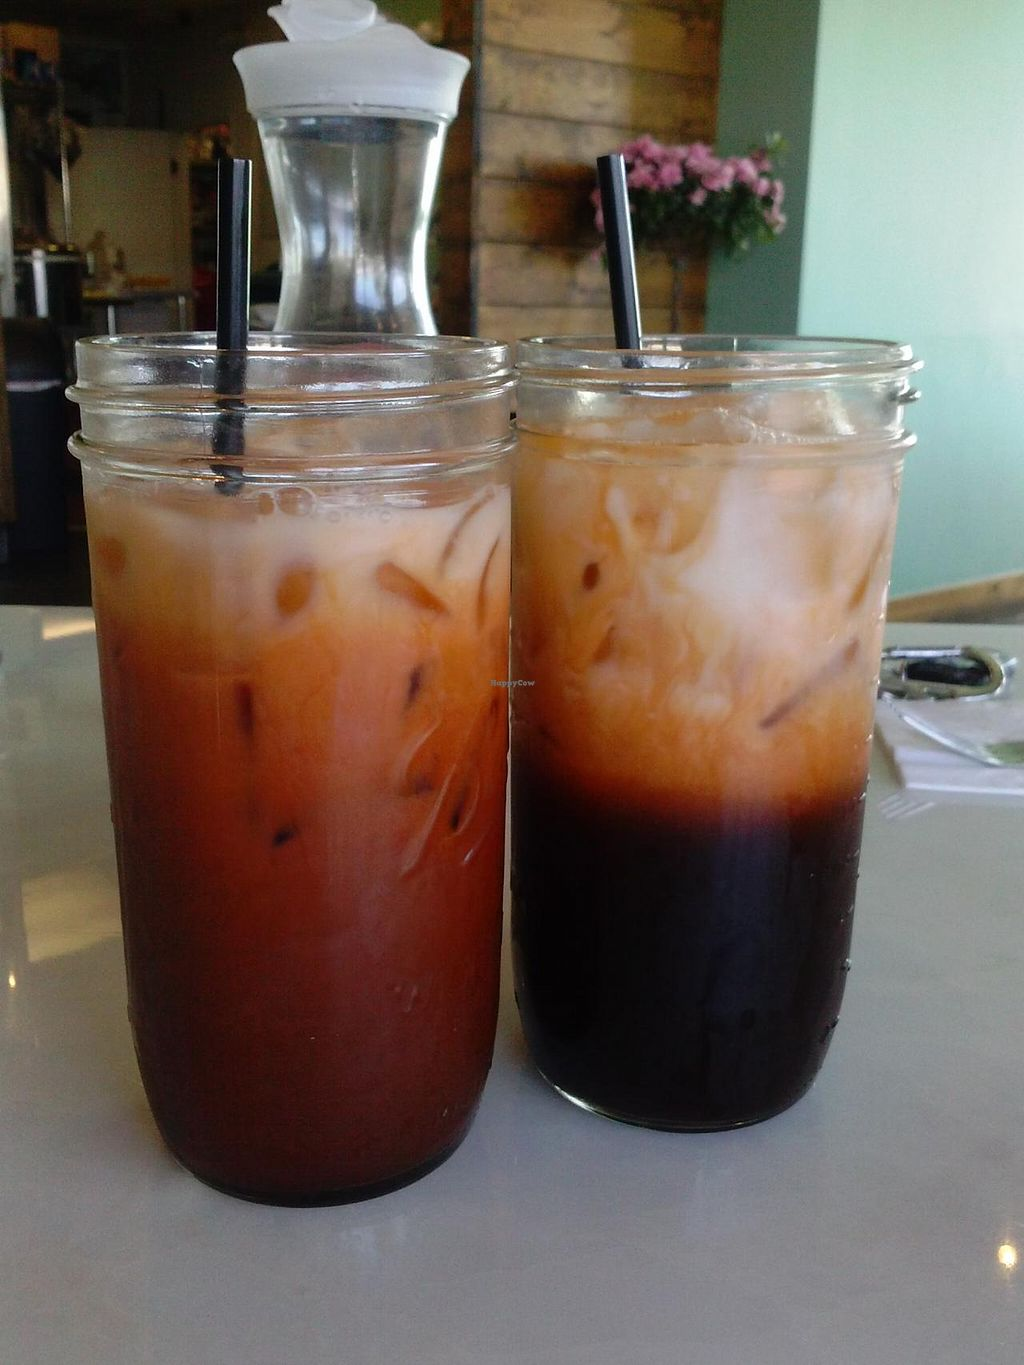 """Photo of My Vegan Gold  by <a href=""""/members/profile/Sonja%20and%20Dirk"""">Sonja and Dirk</a> <br/>Thai iced tea <br/> April 5, 2015  - <a href='/contact/abuse/image/41660/97941'>Report</a>"""